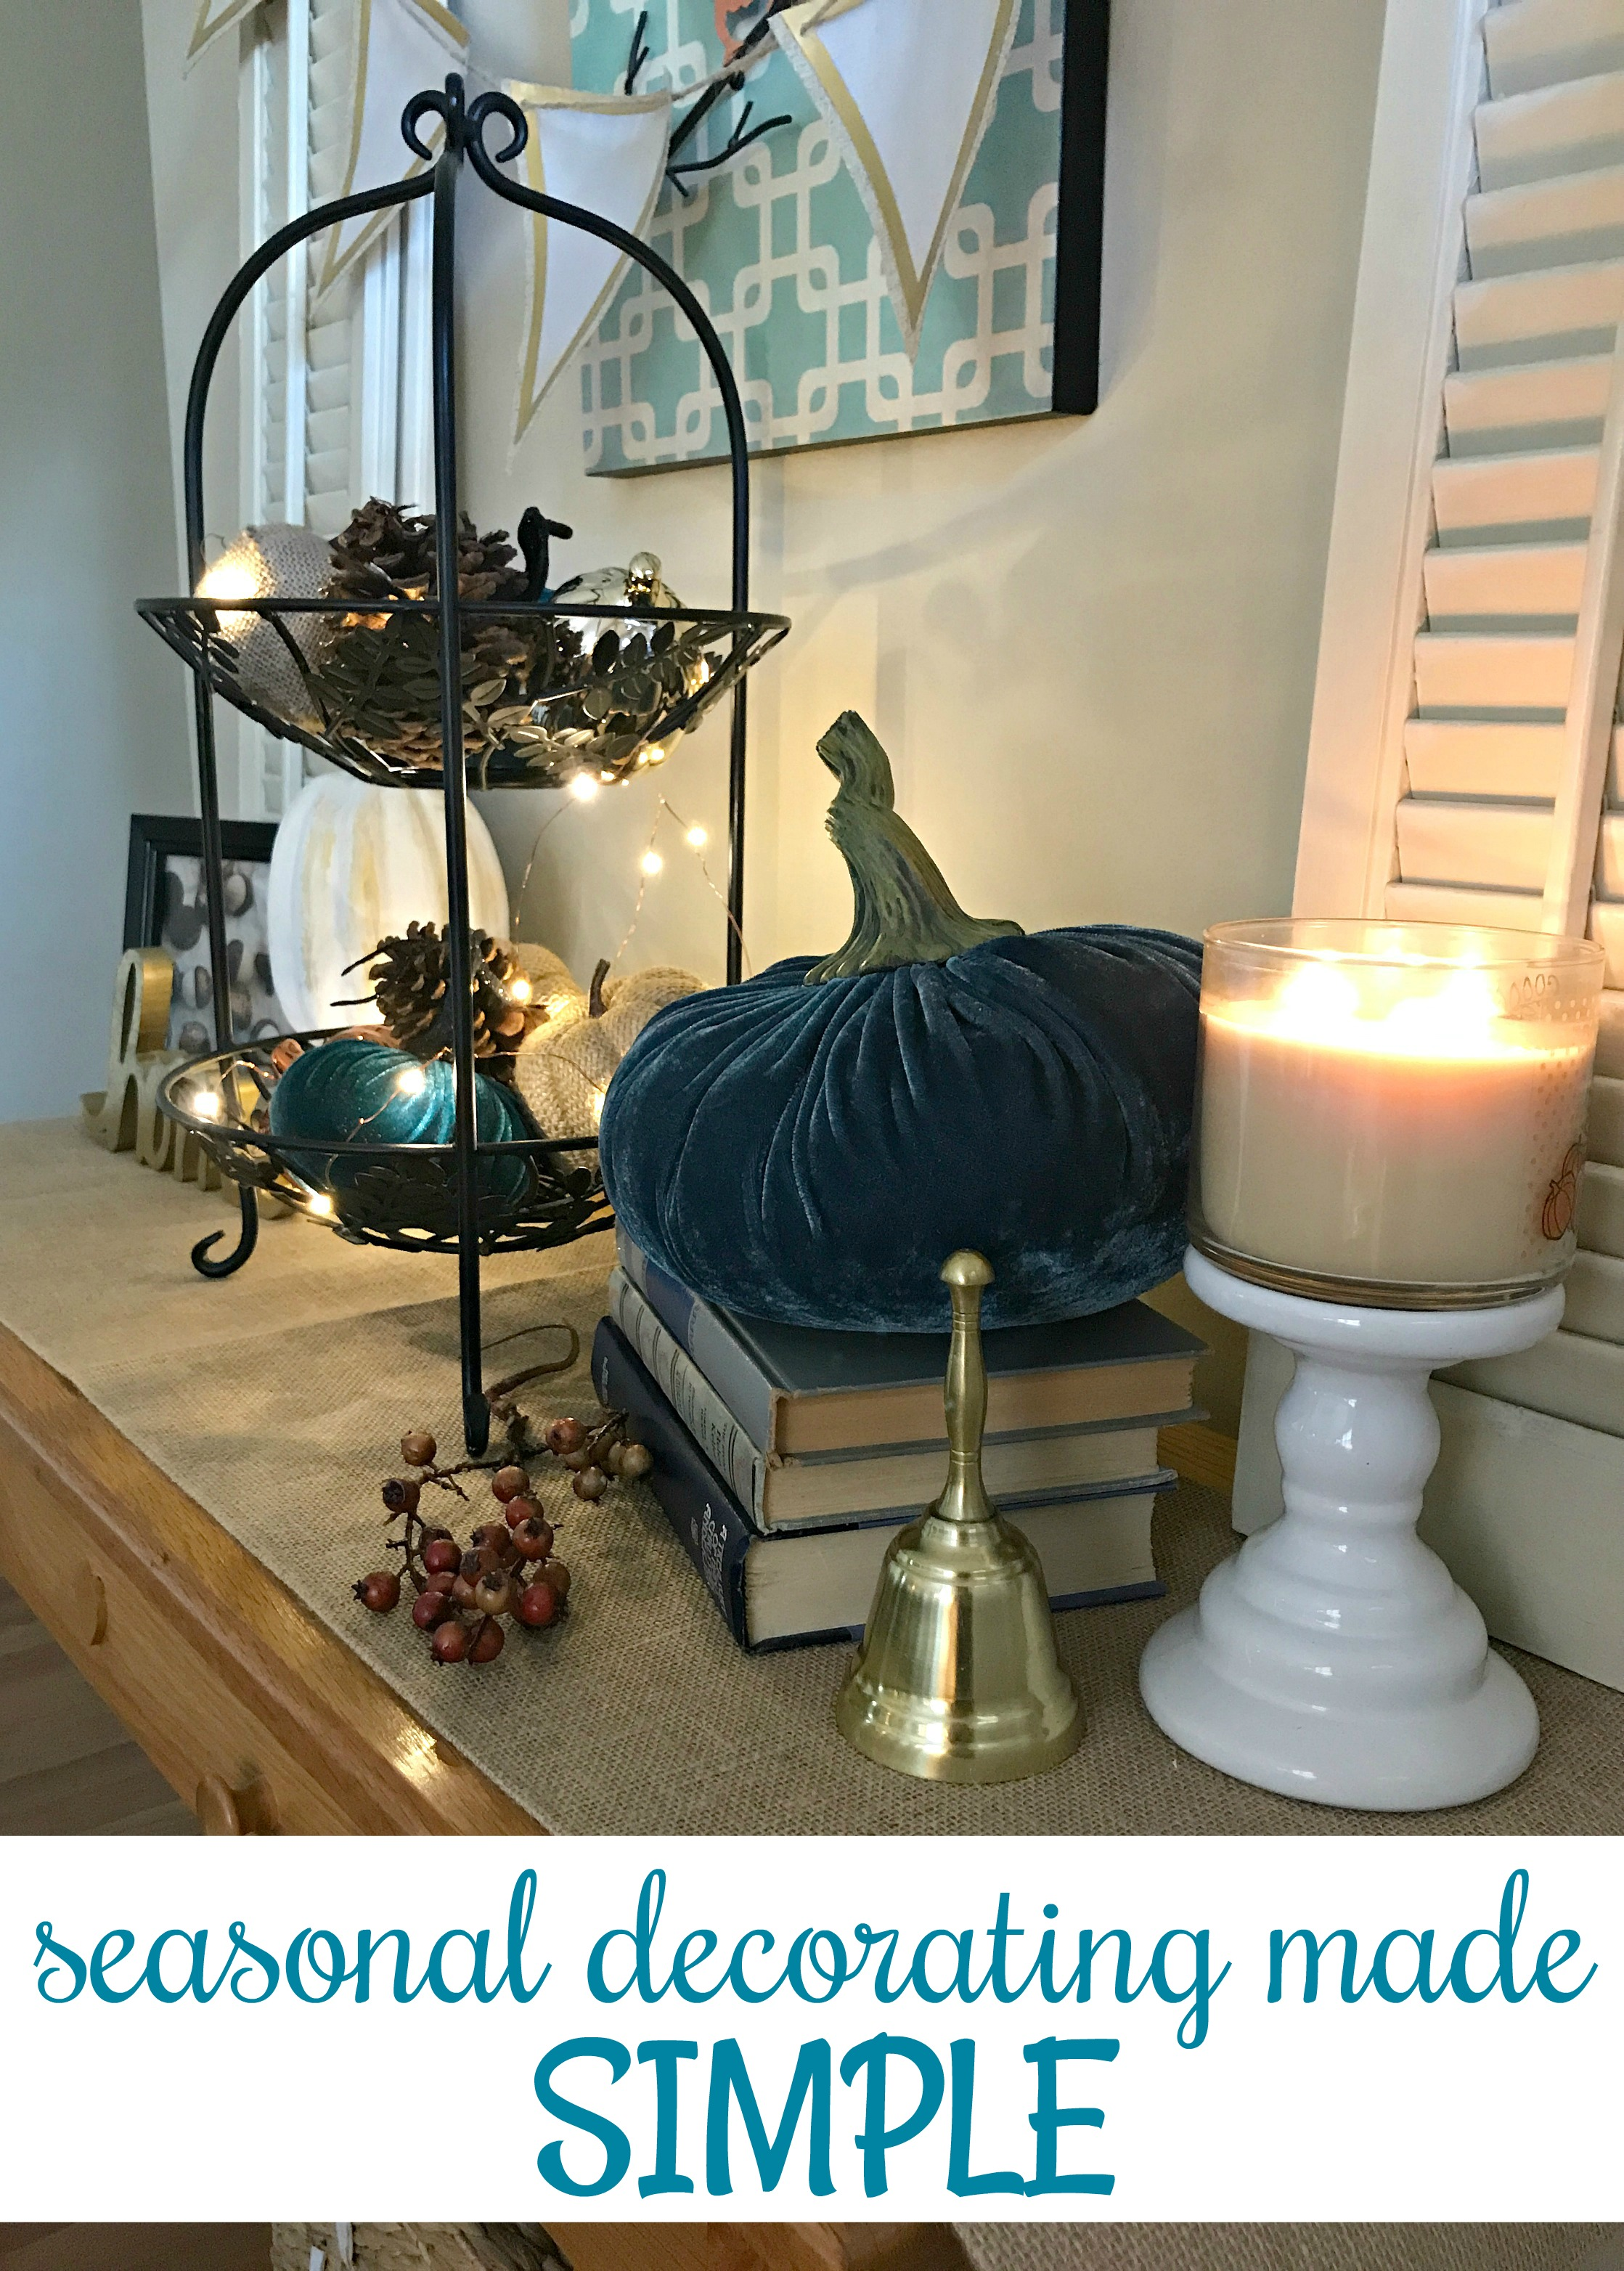 Seasonal Decorating Made Simple – Come Home For Comfort